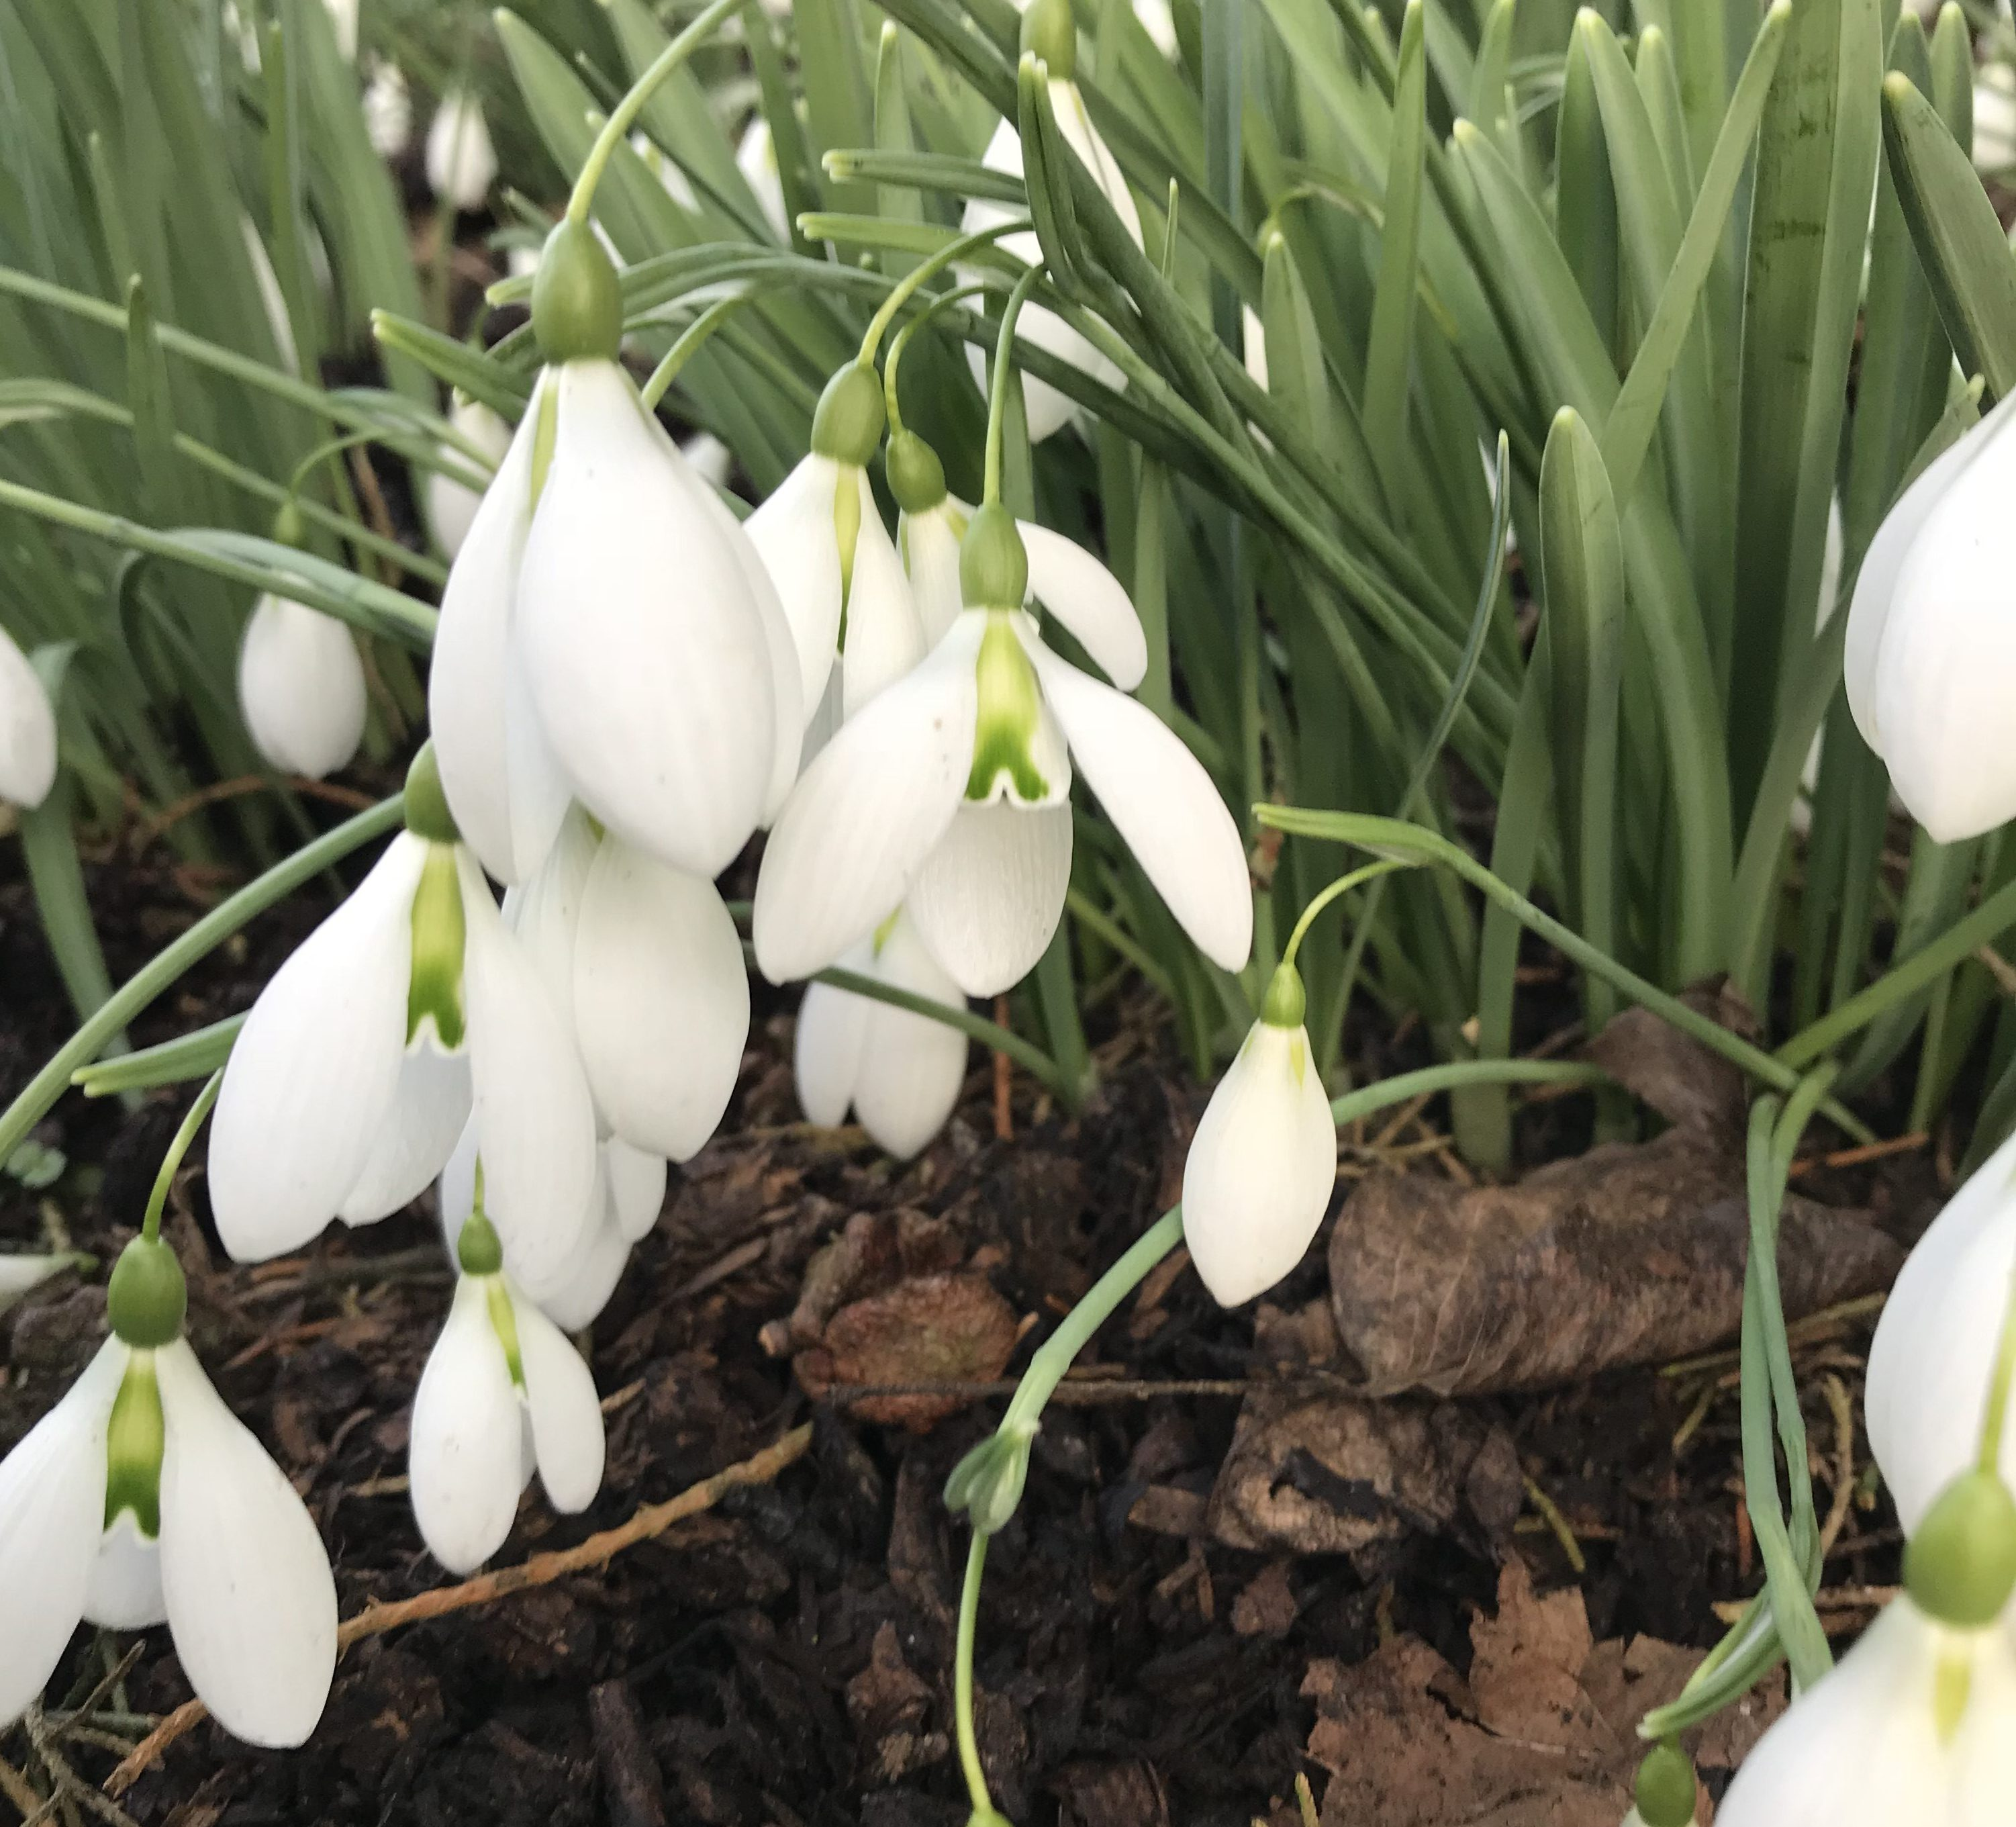 Snowdrops – heralding an approaching spring